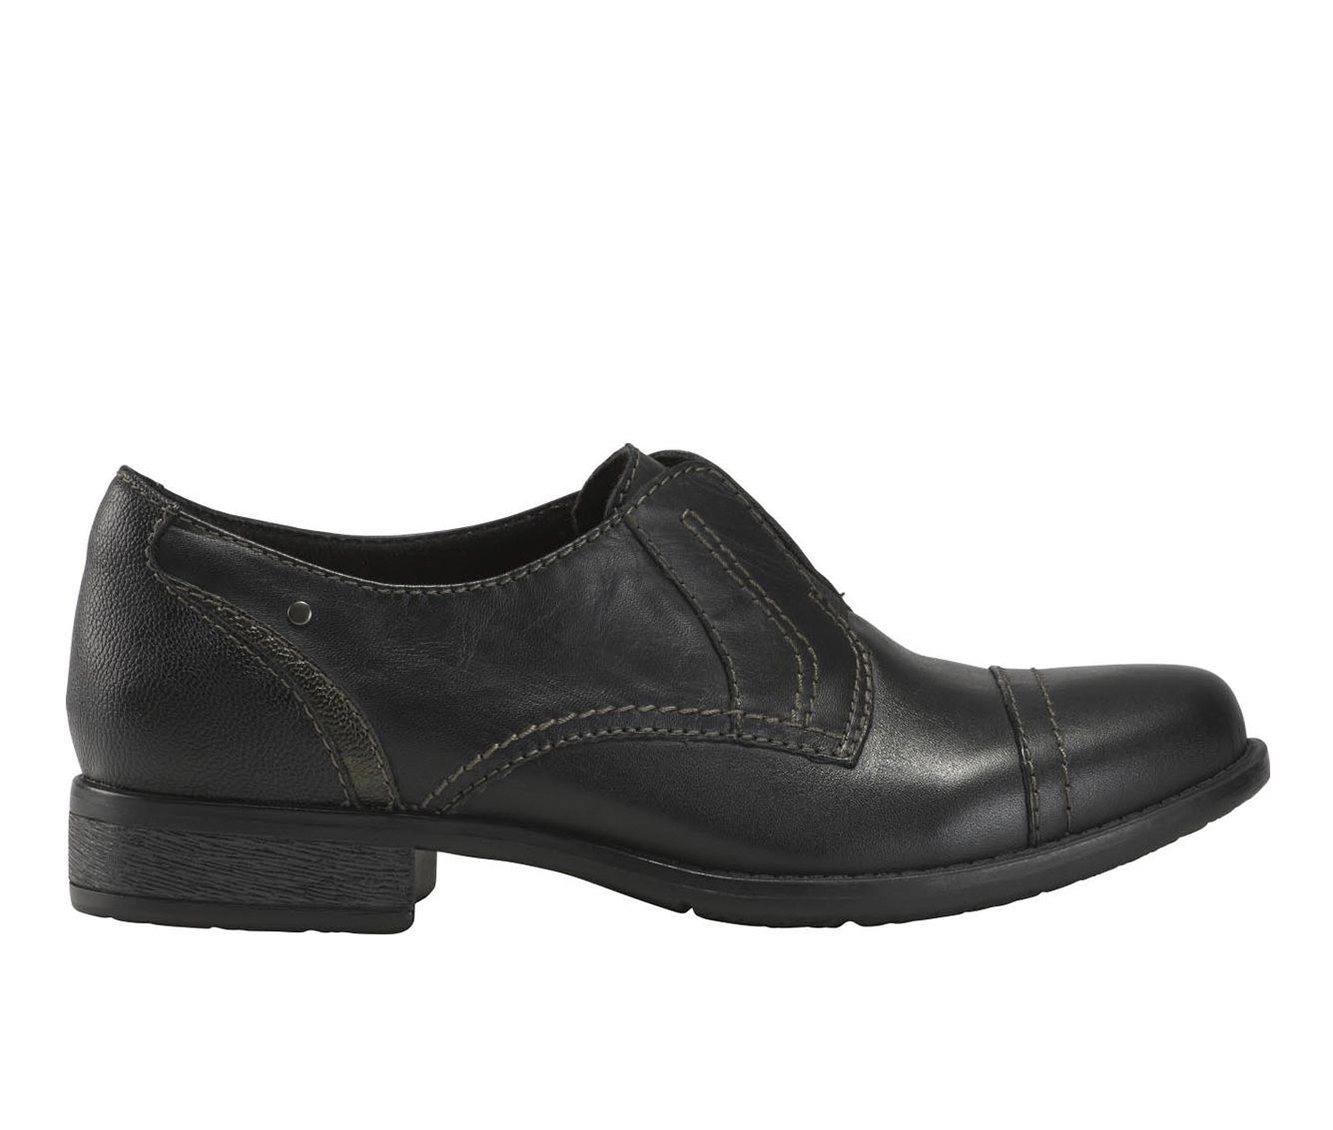 Earth Origins Navigate Nate Women's Shoe (Black Leather)